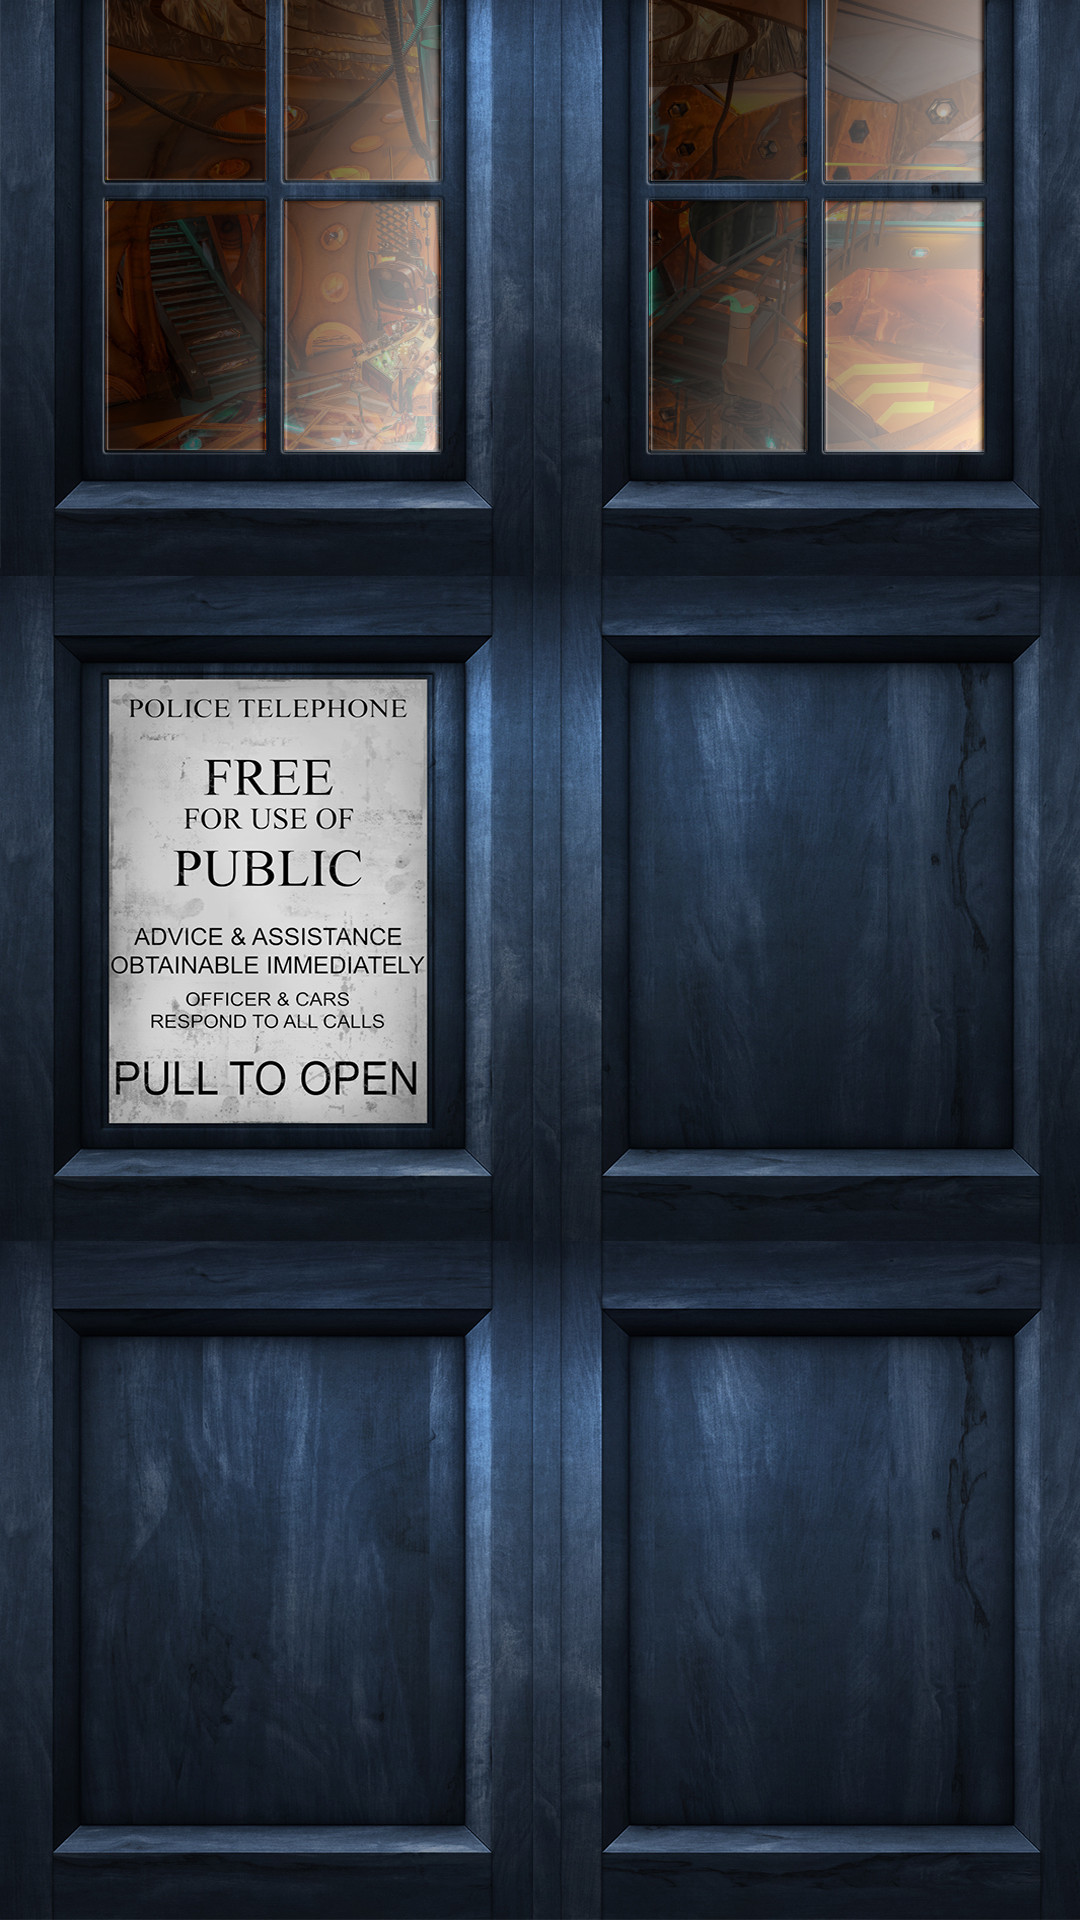 Made a Tardis HQ wallpaper for my phone.